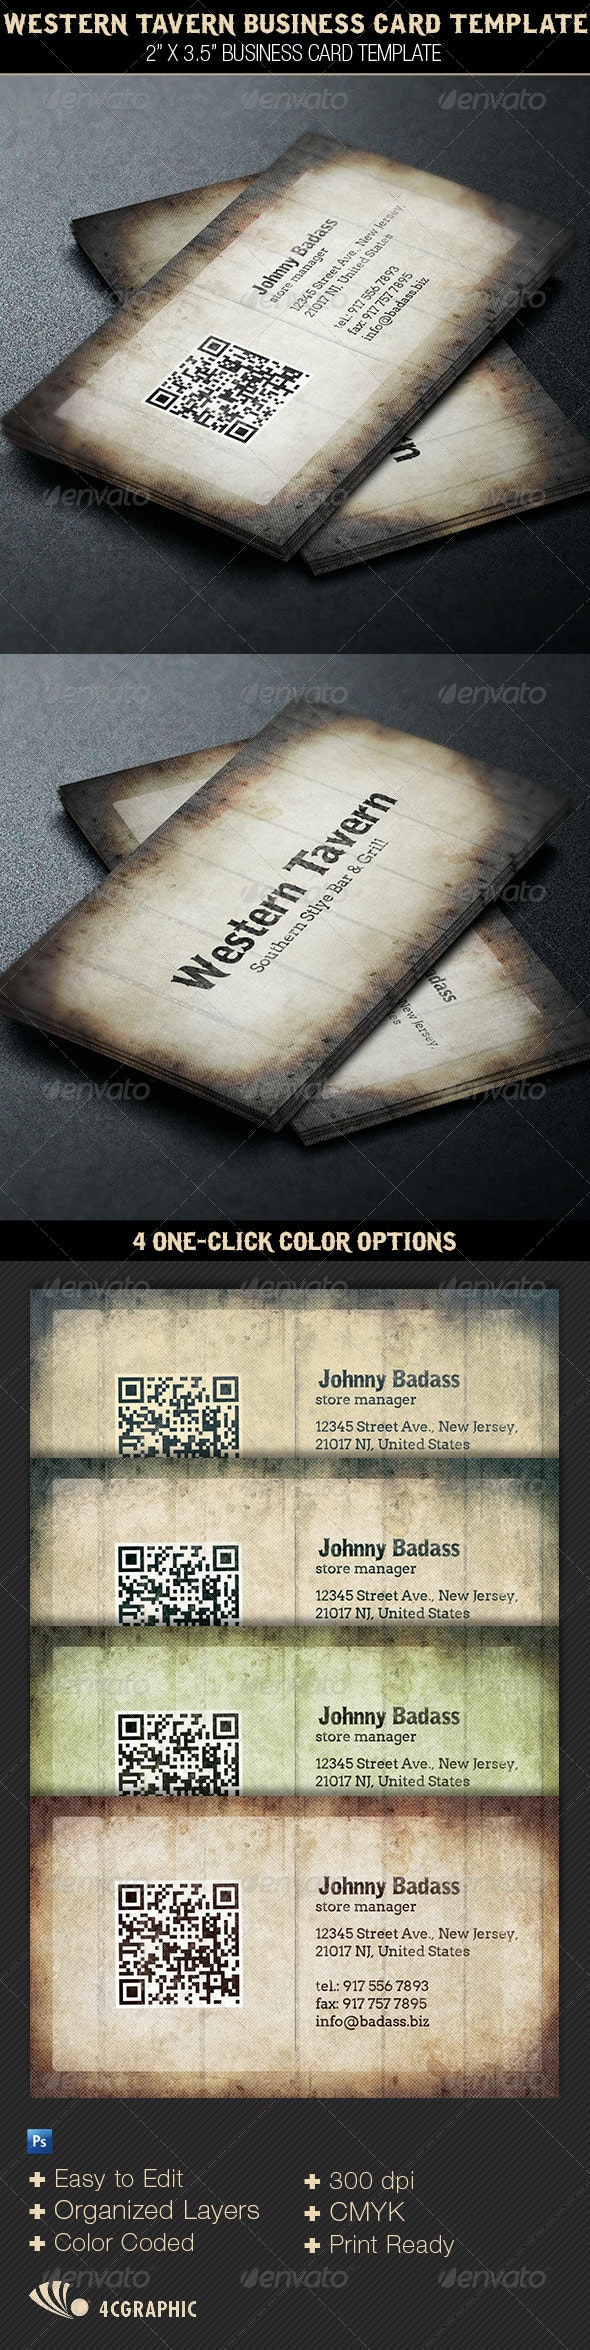 Western Tavern Business Card Template - Retro/Vintage Business Cards